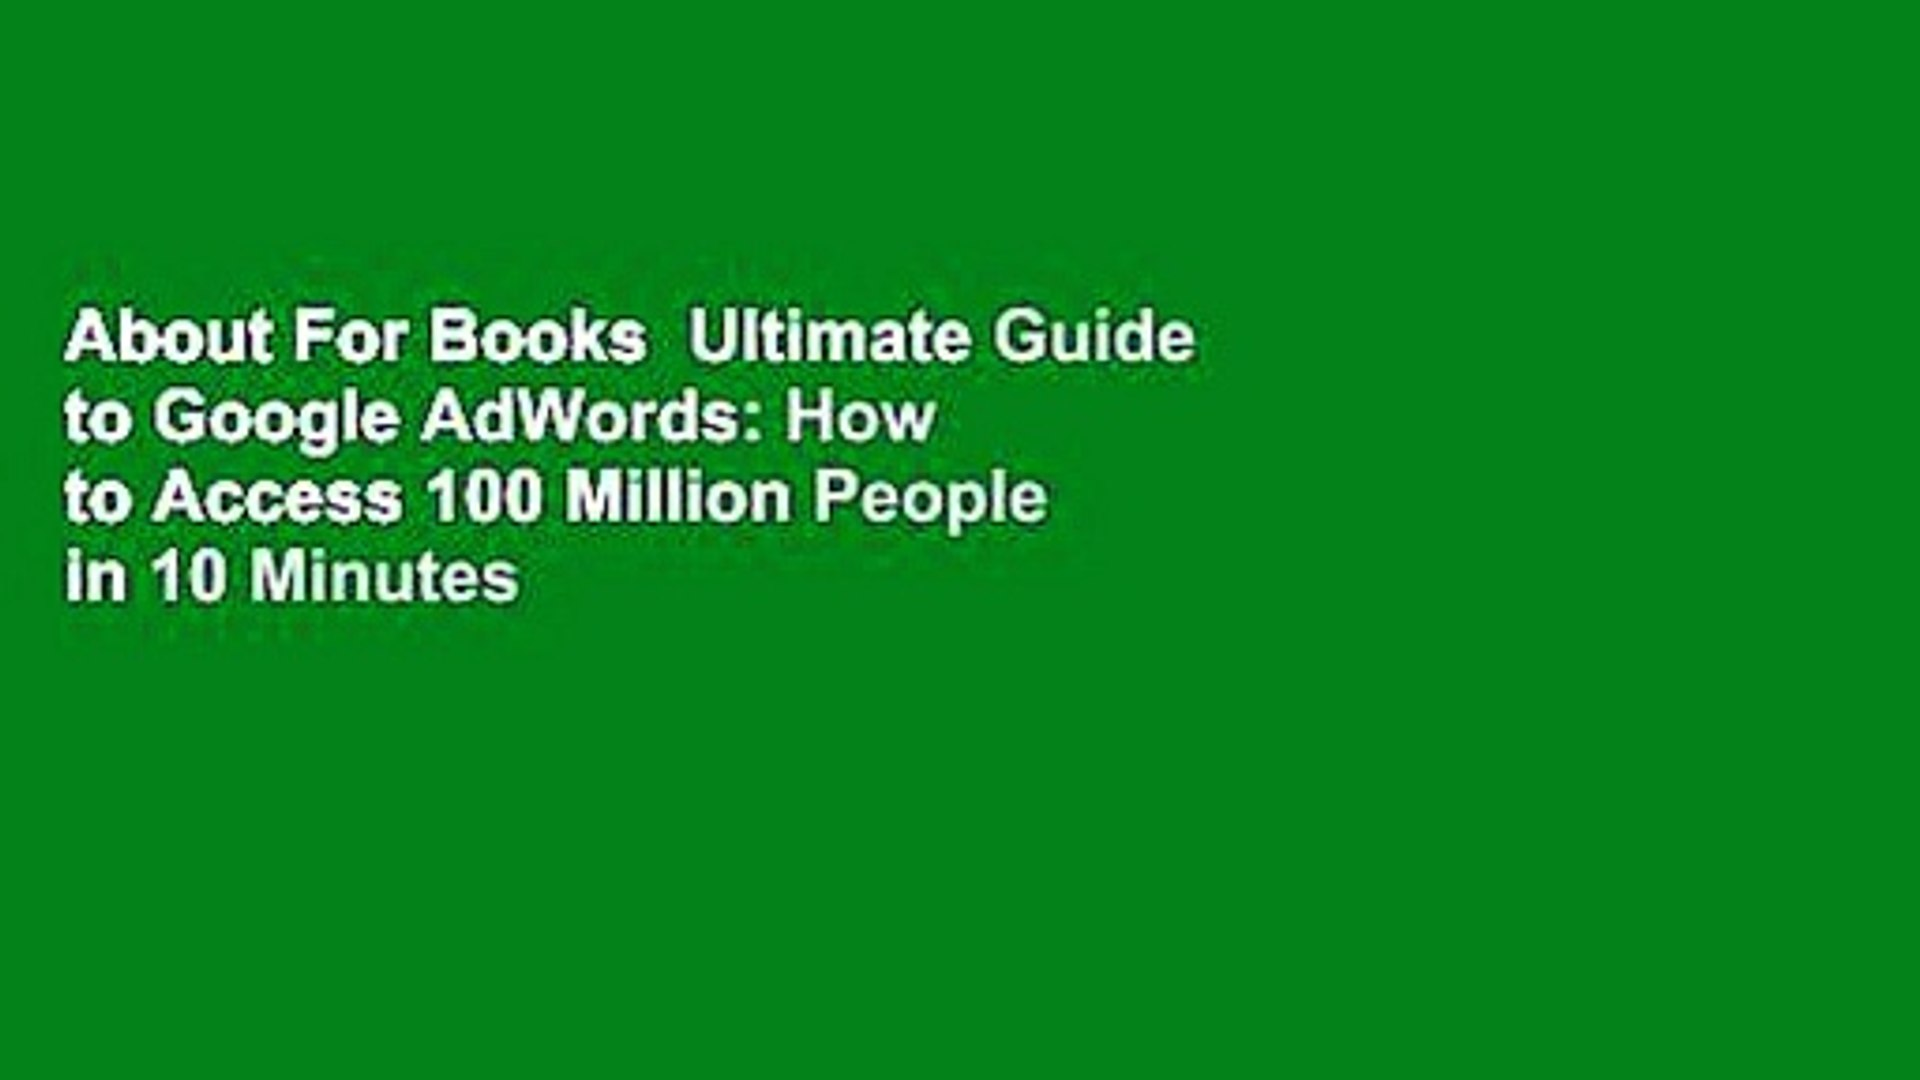 About For Books  Ultimate Guide to Google AdWords: How to Access 100 Million People in 10 Minutes